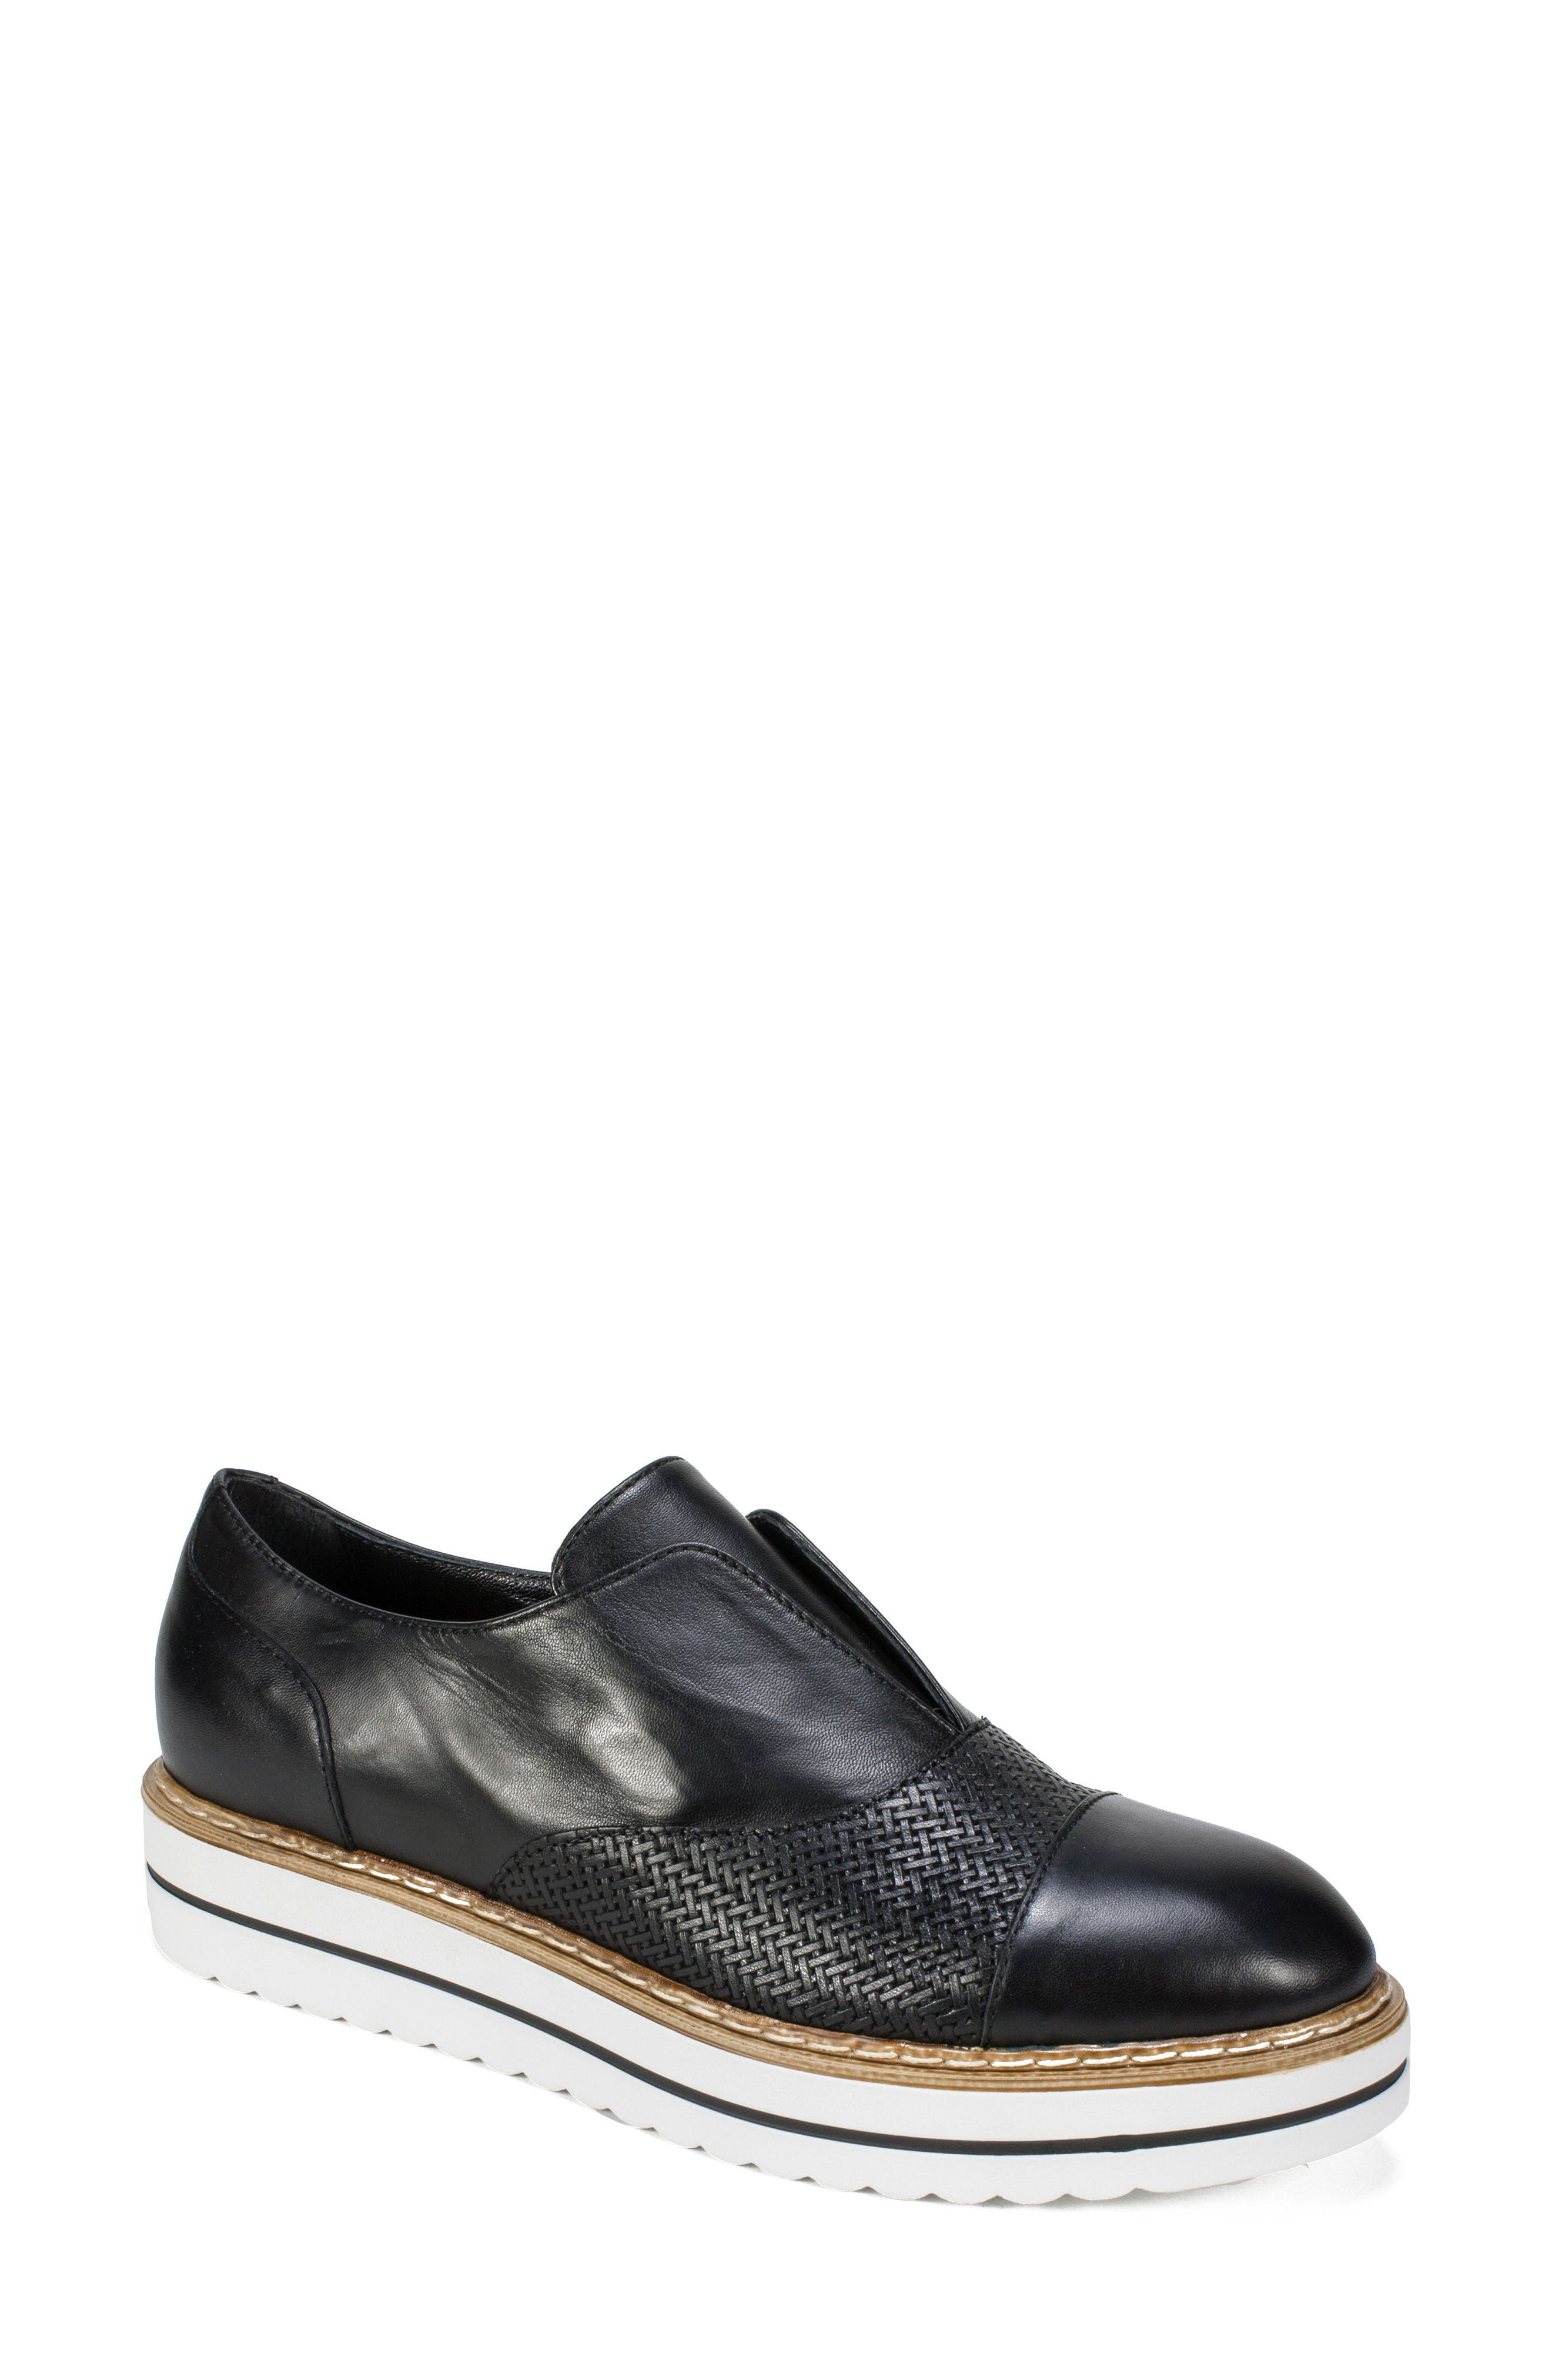 Bliss Loafer,                             Main thumbnail 1, color,                             Black Leather